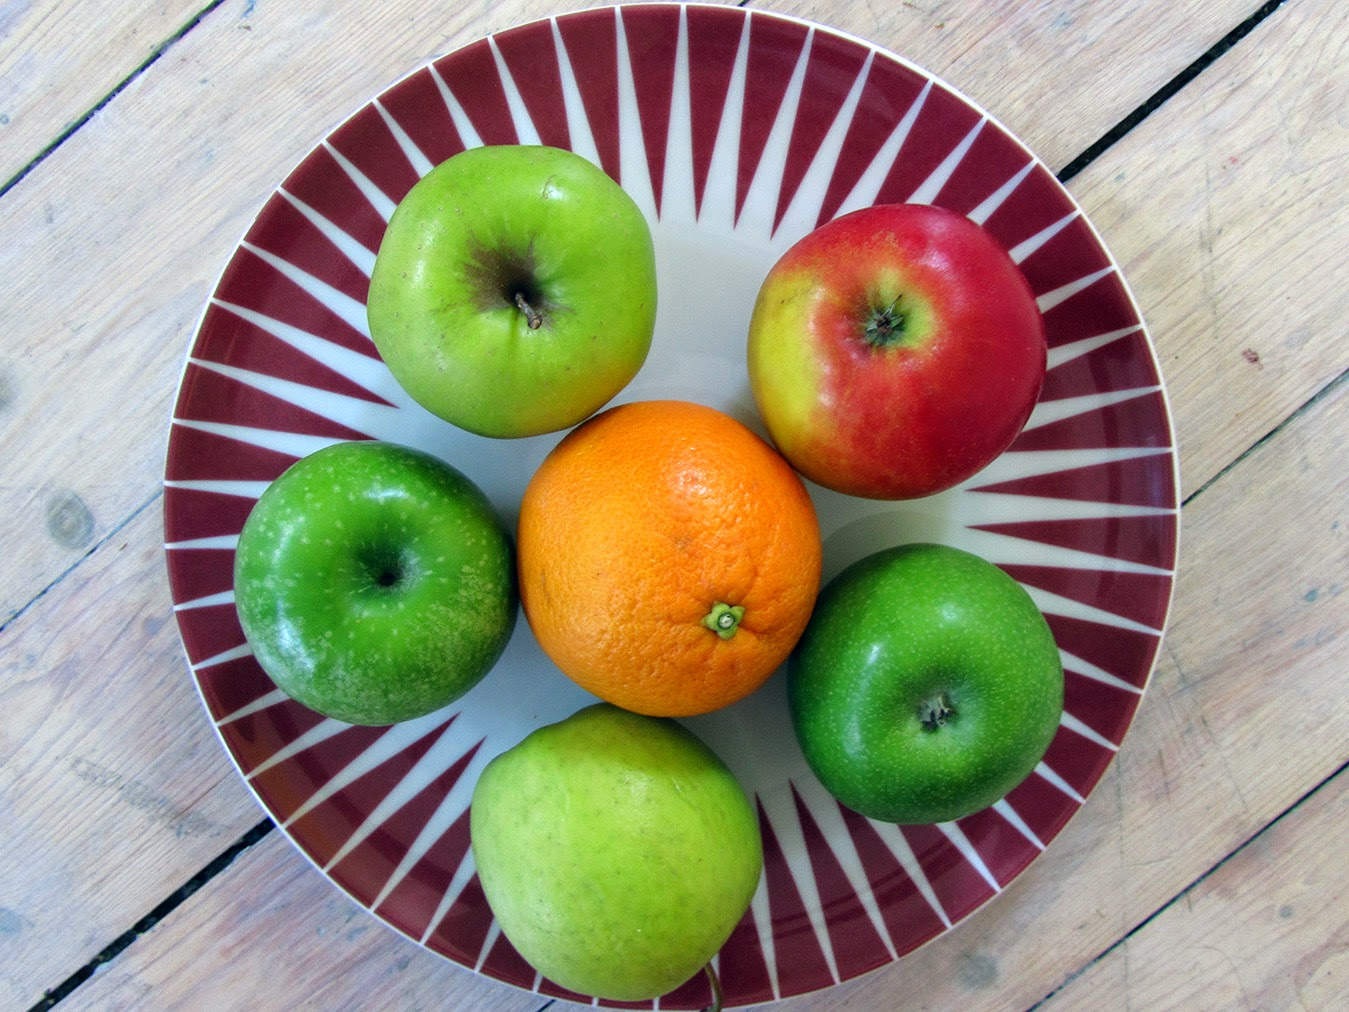 apples and an orange on an Ikea Bråkig plate